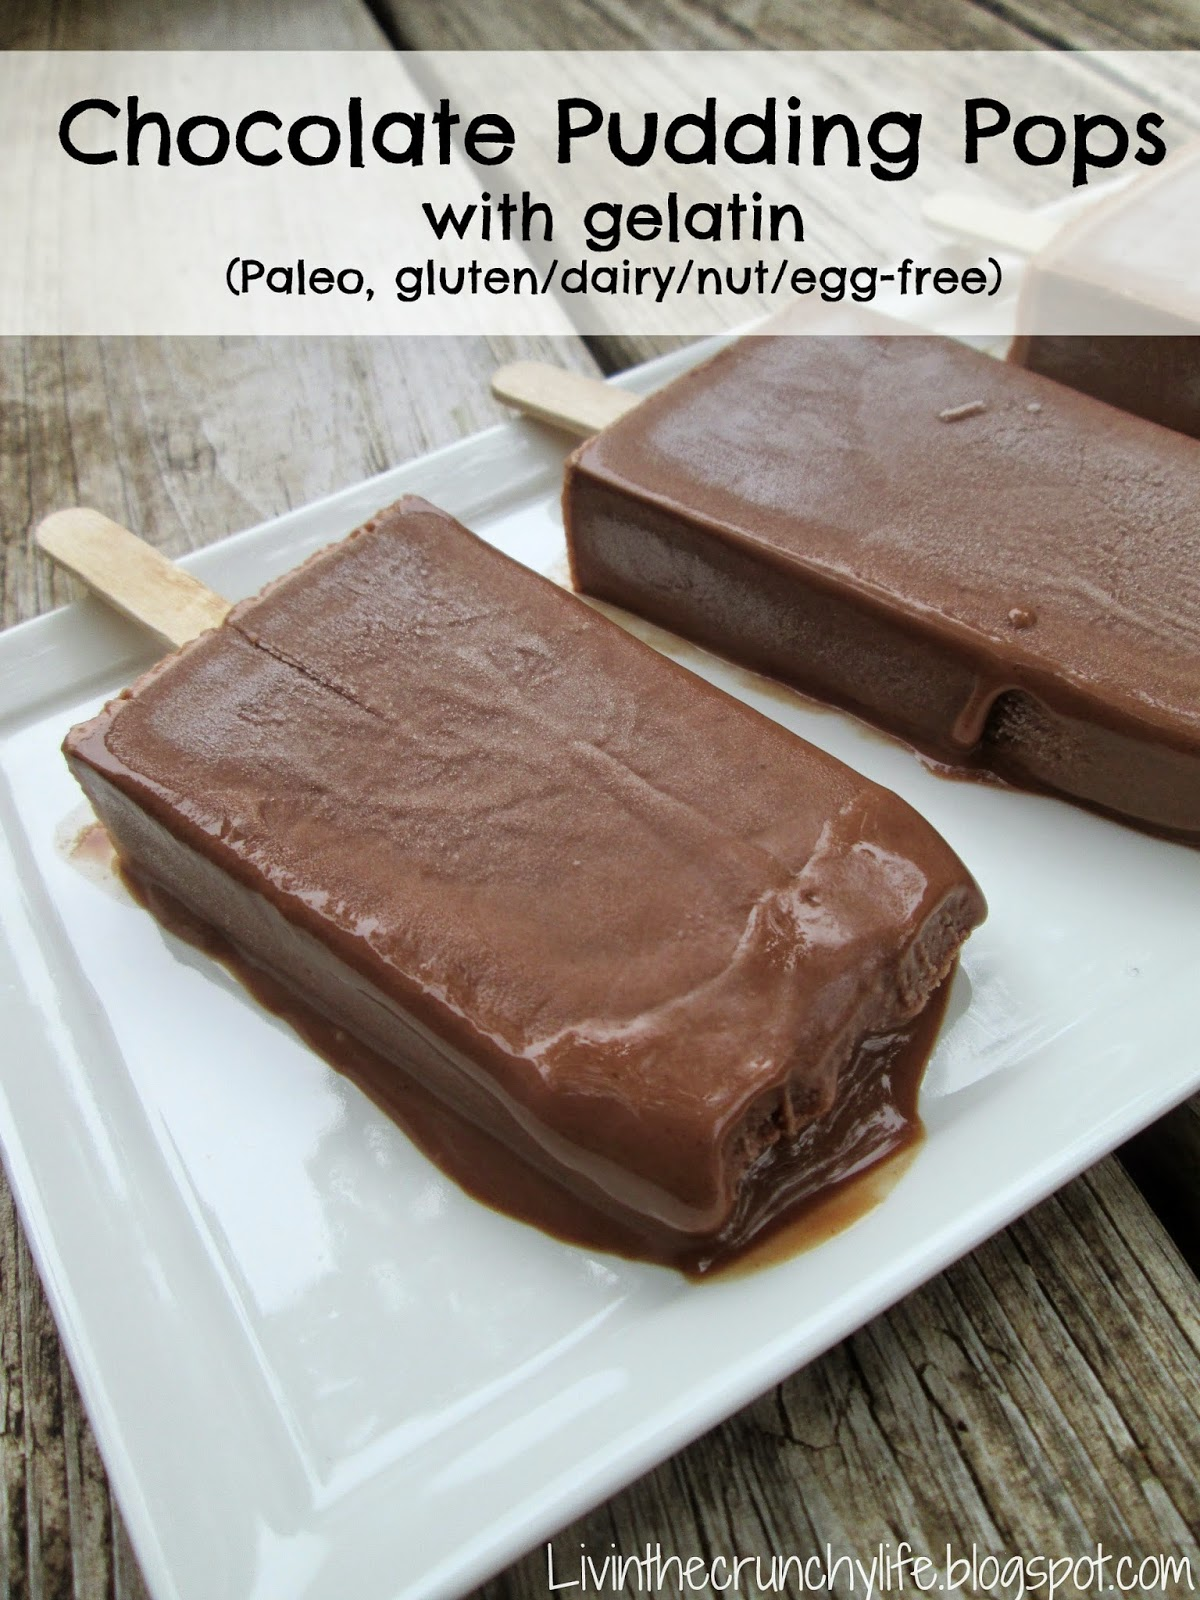 Paleo Pudding Pops: Chocolate or Banana (Paleo, Gluten/Dairy/Egg-Free)